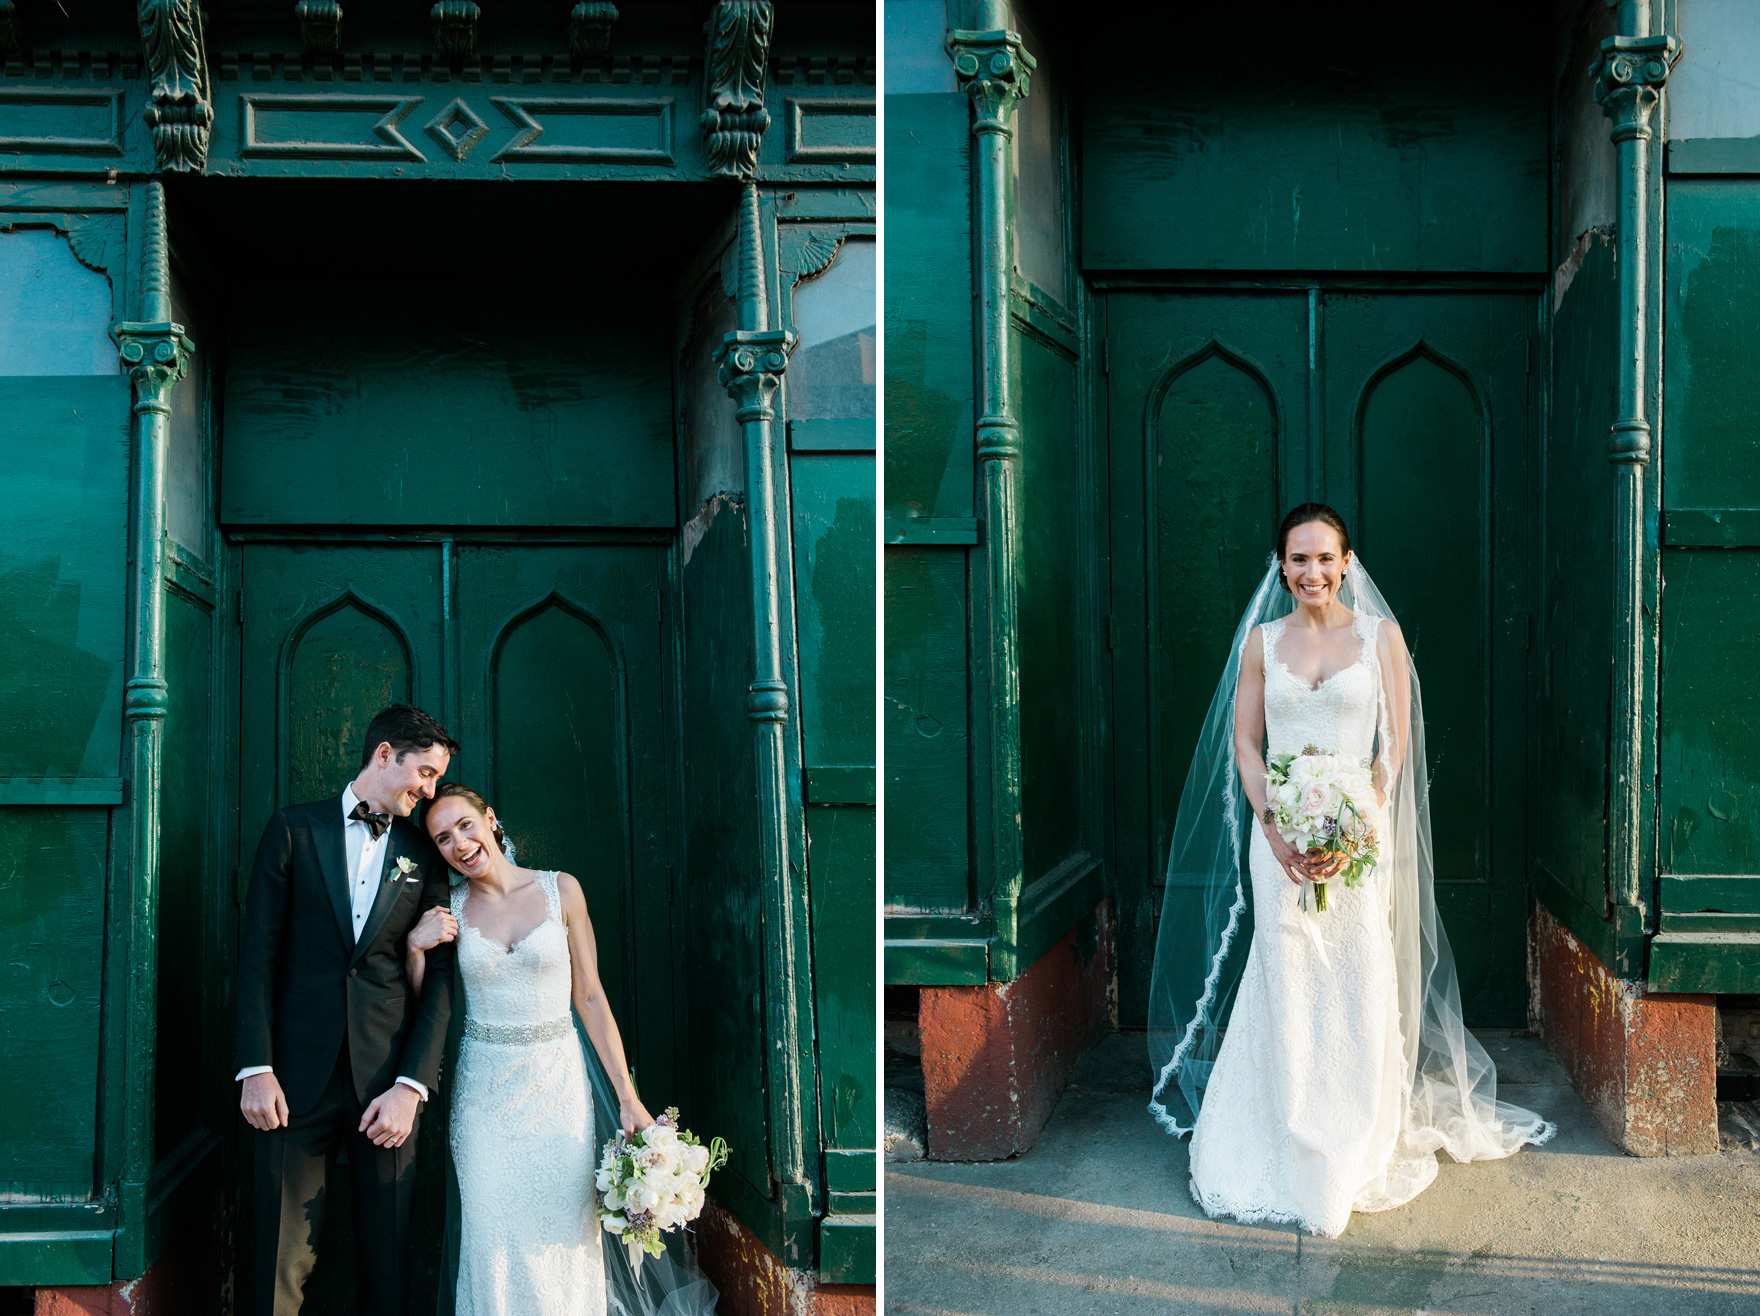 Williamsburg New York Fine Art Wedding by Christina Lilly Photography051